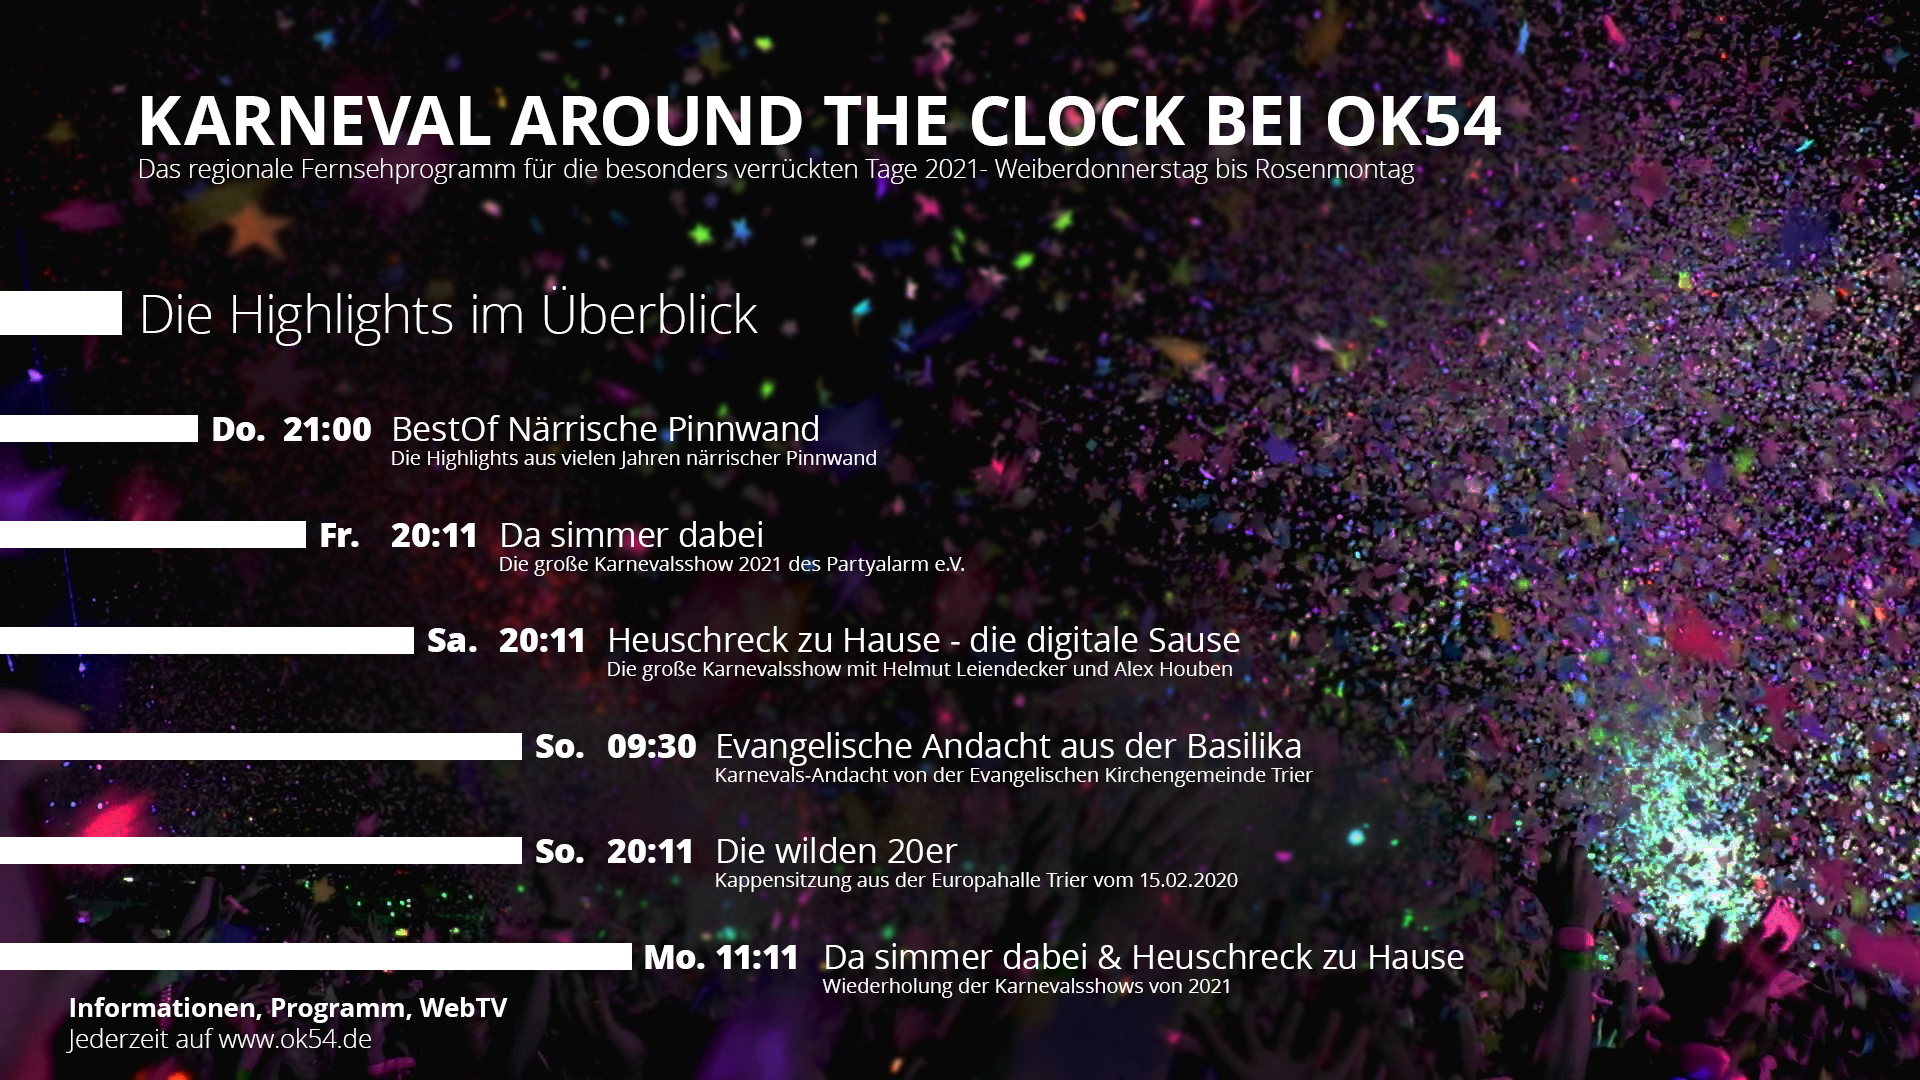 You are currently viewing Karnevalsprogramm bei OK54